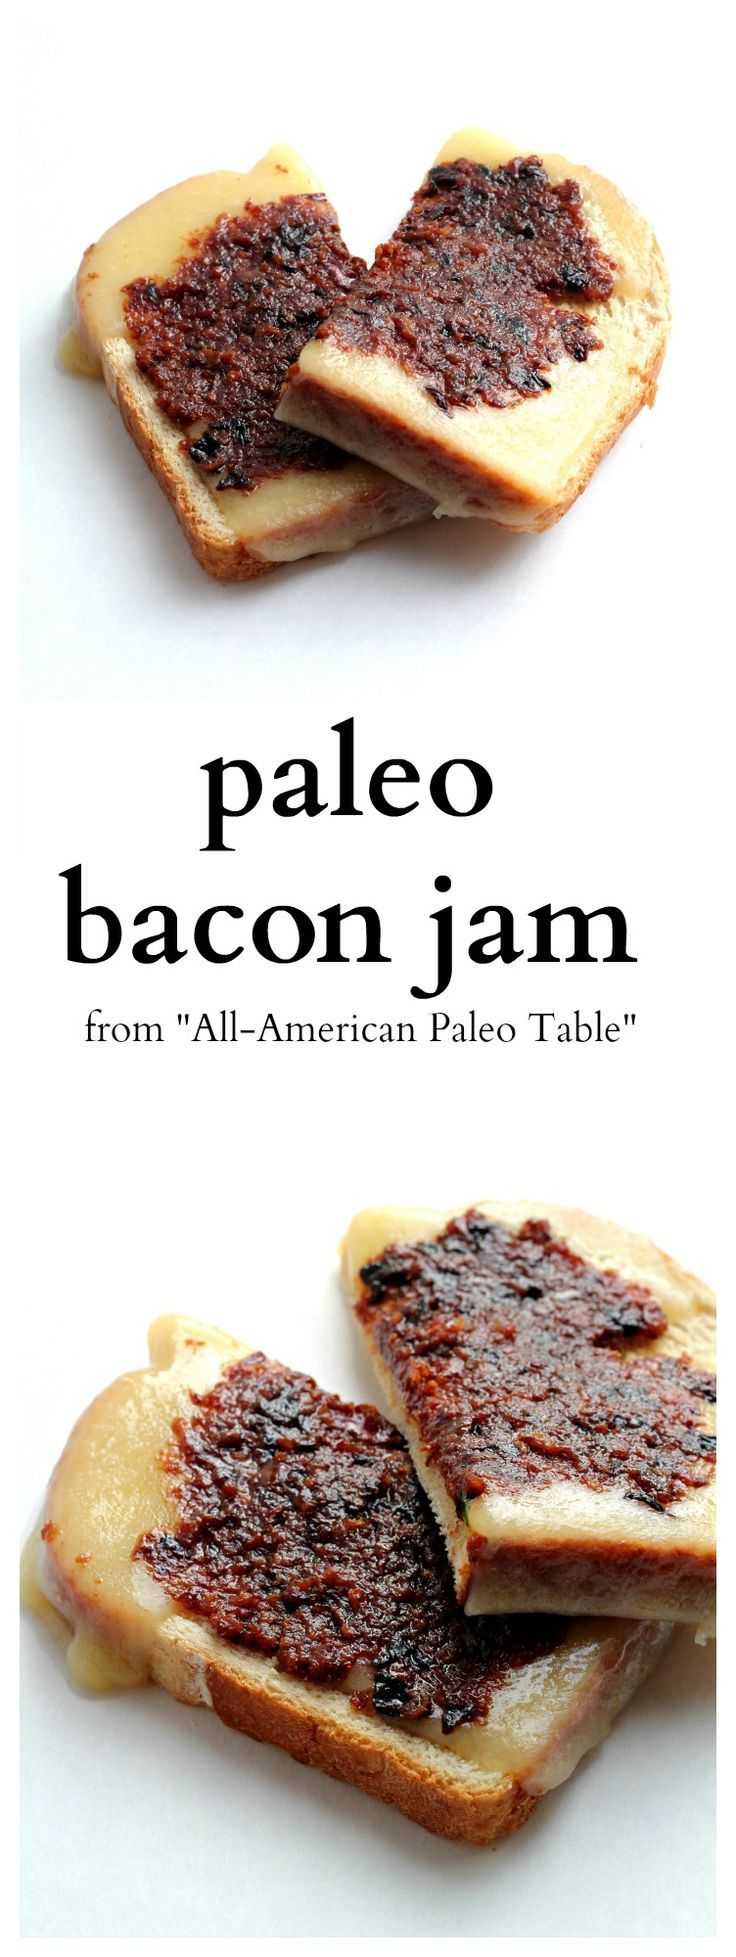 This is by far my favorite Paleo recipe. It is an Onion Bacon Jam that goes great on burgers or on a Gluten Free Grilled Cheese.